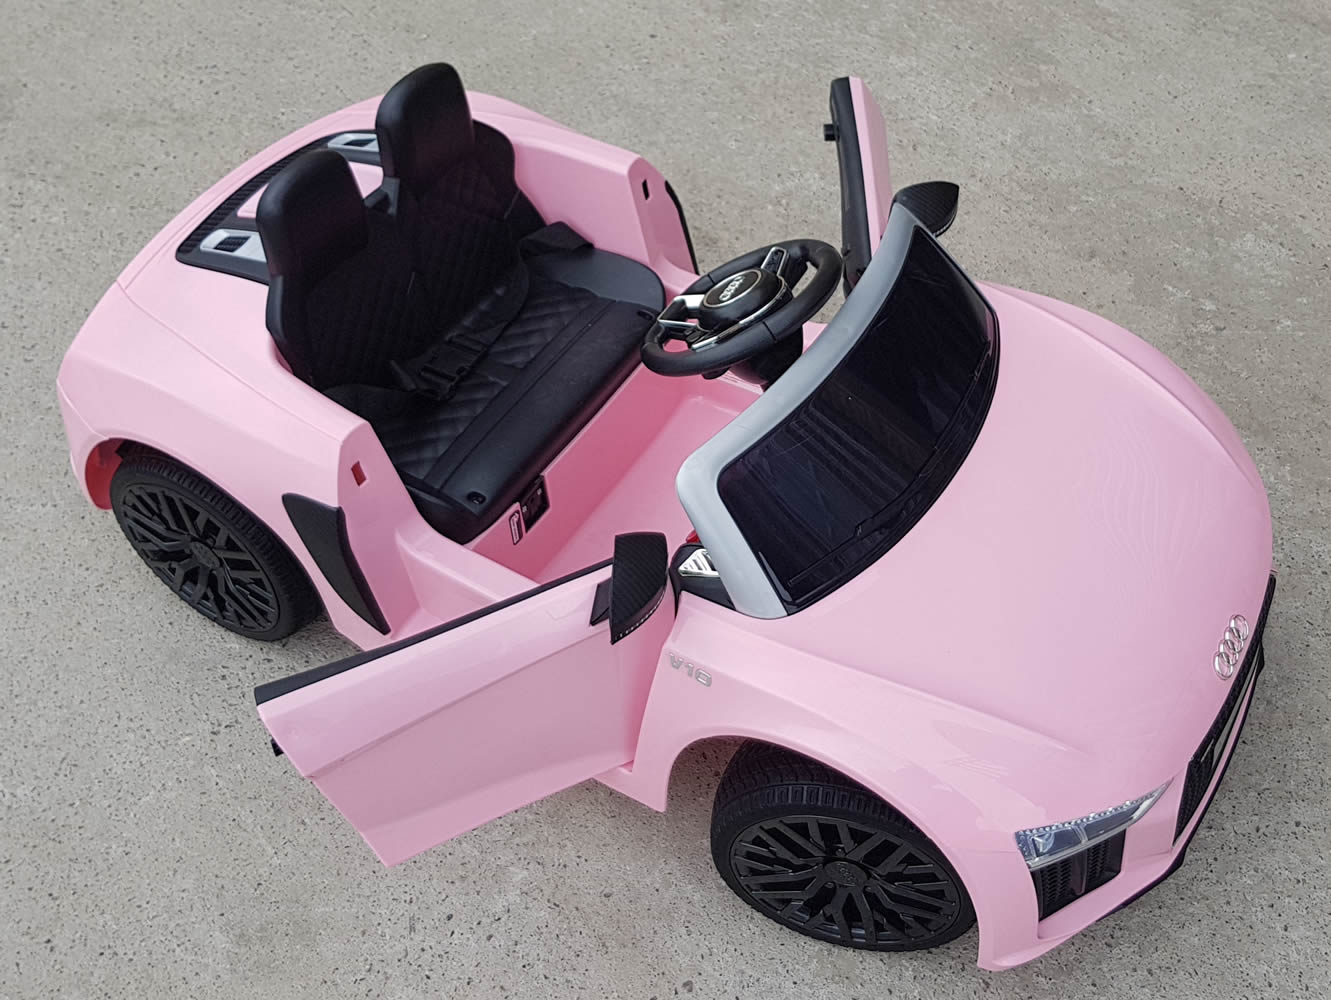 Audi R8 Spyder Compact 12v Ride on Kids Car with Remote - Pink